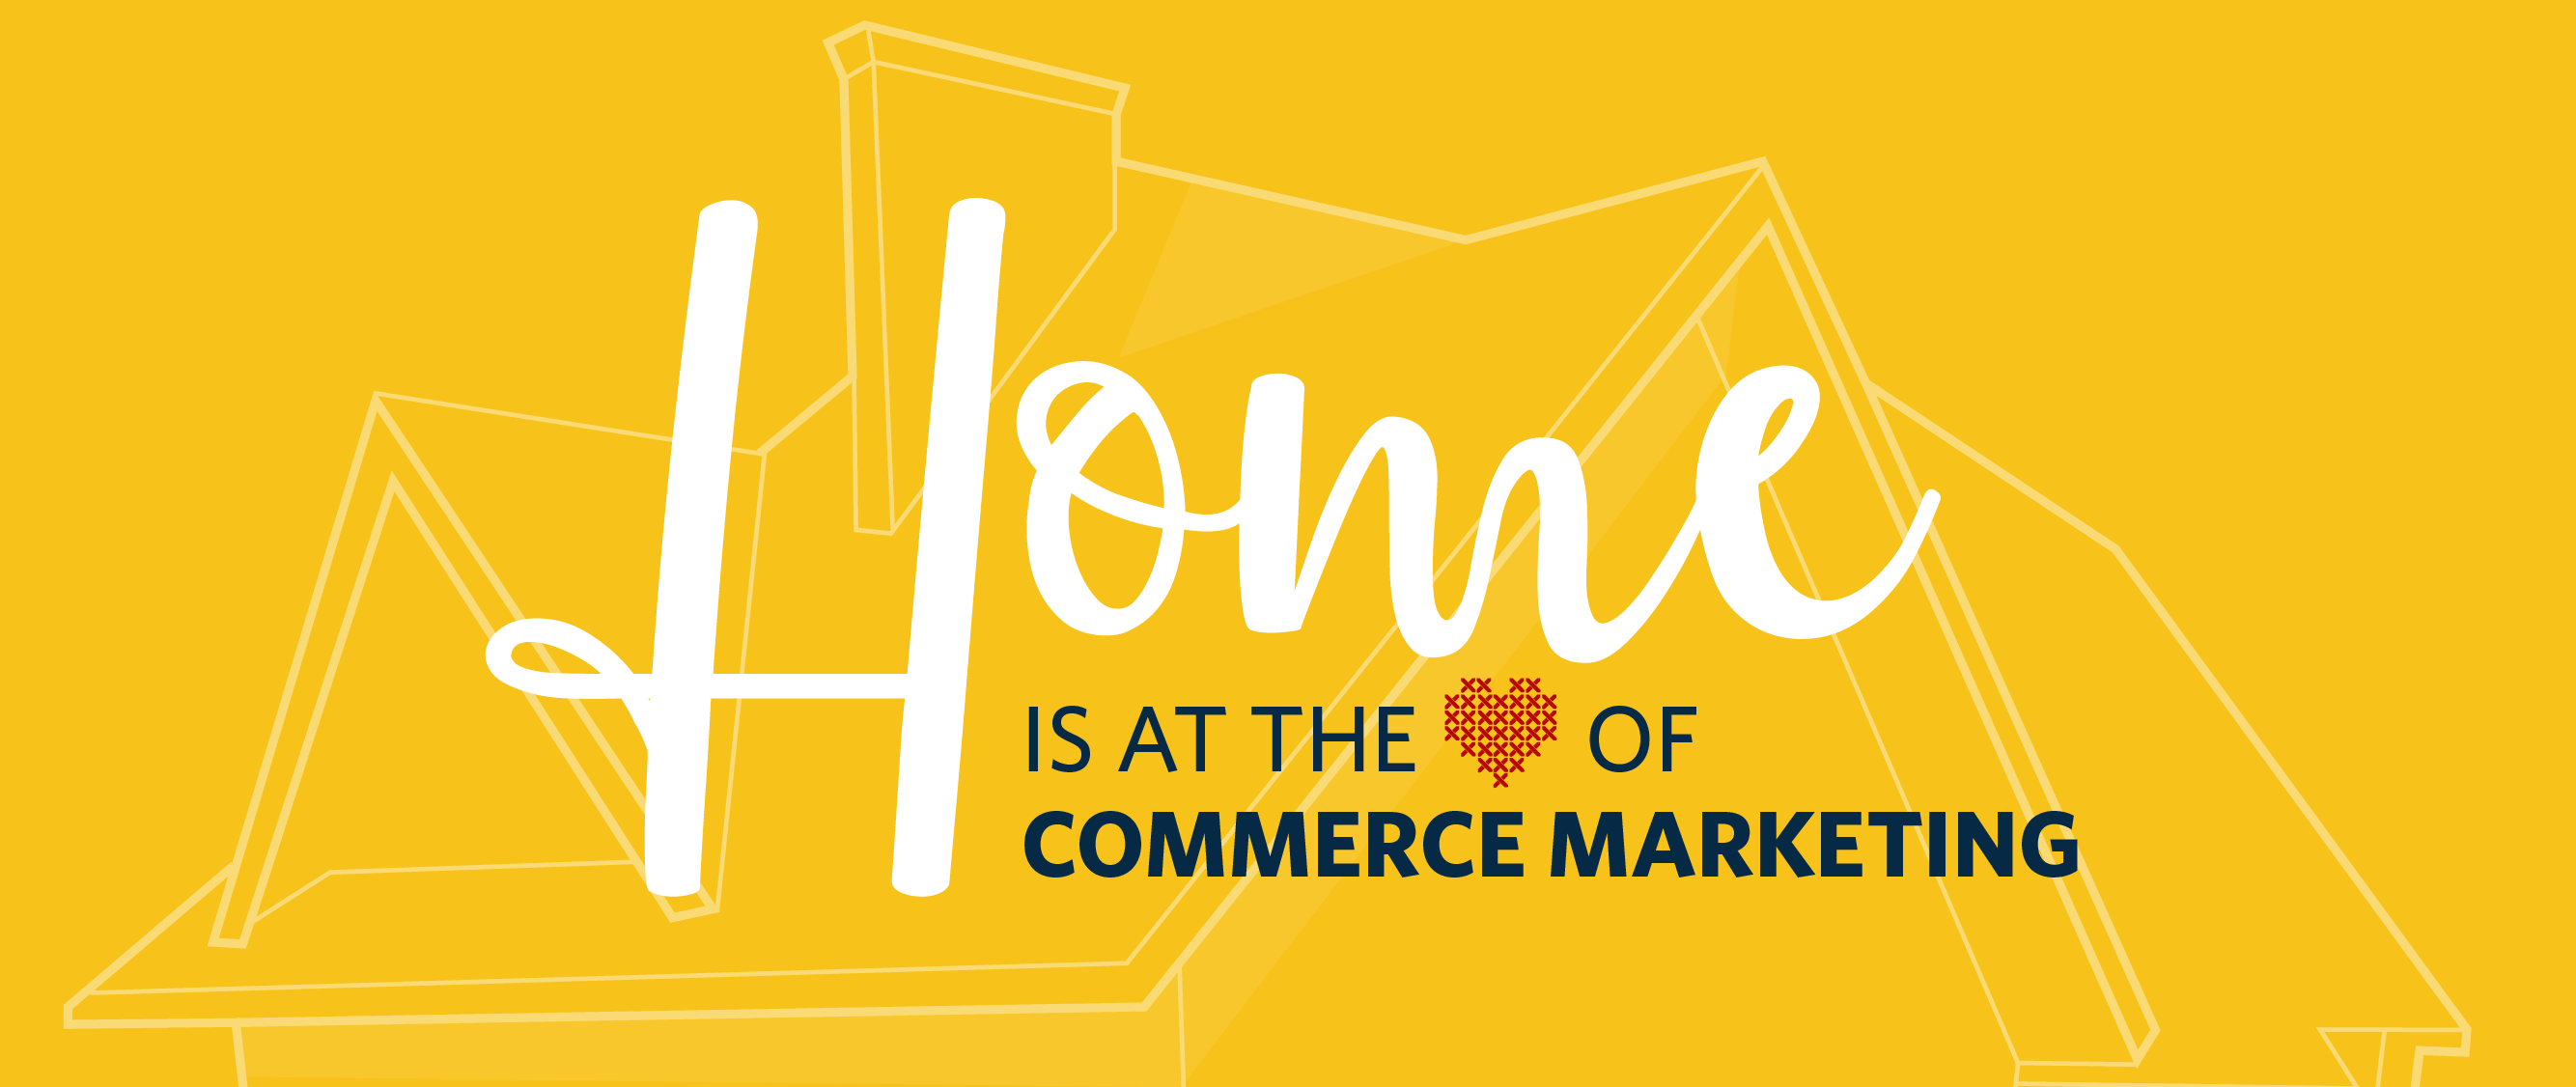 Home-is-at-the-heart-of-commerce-marketing